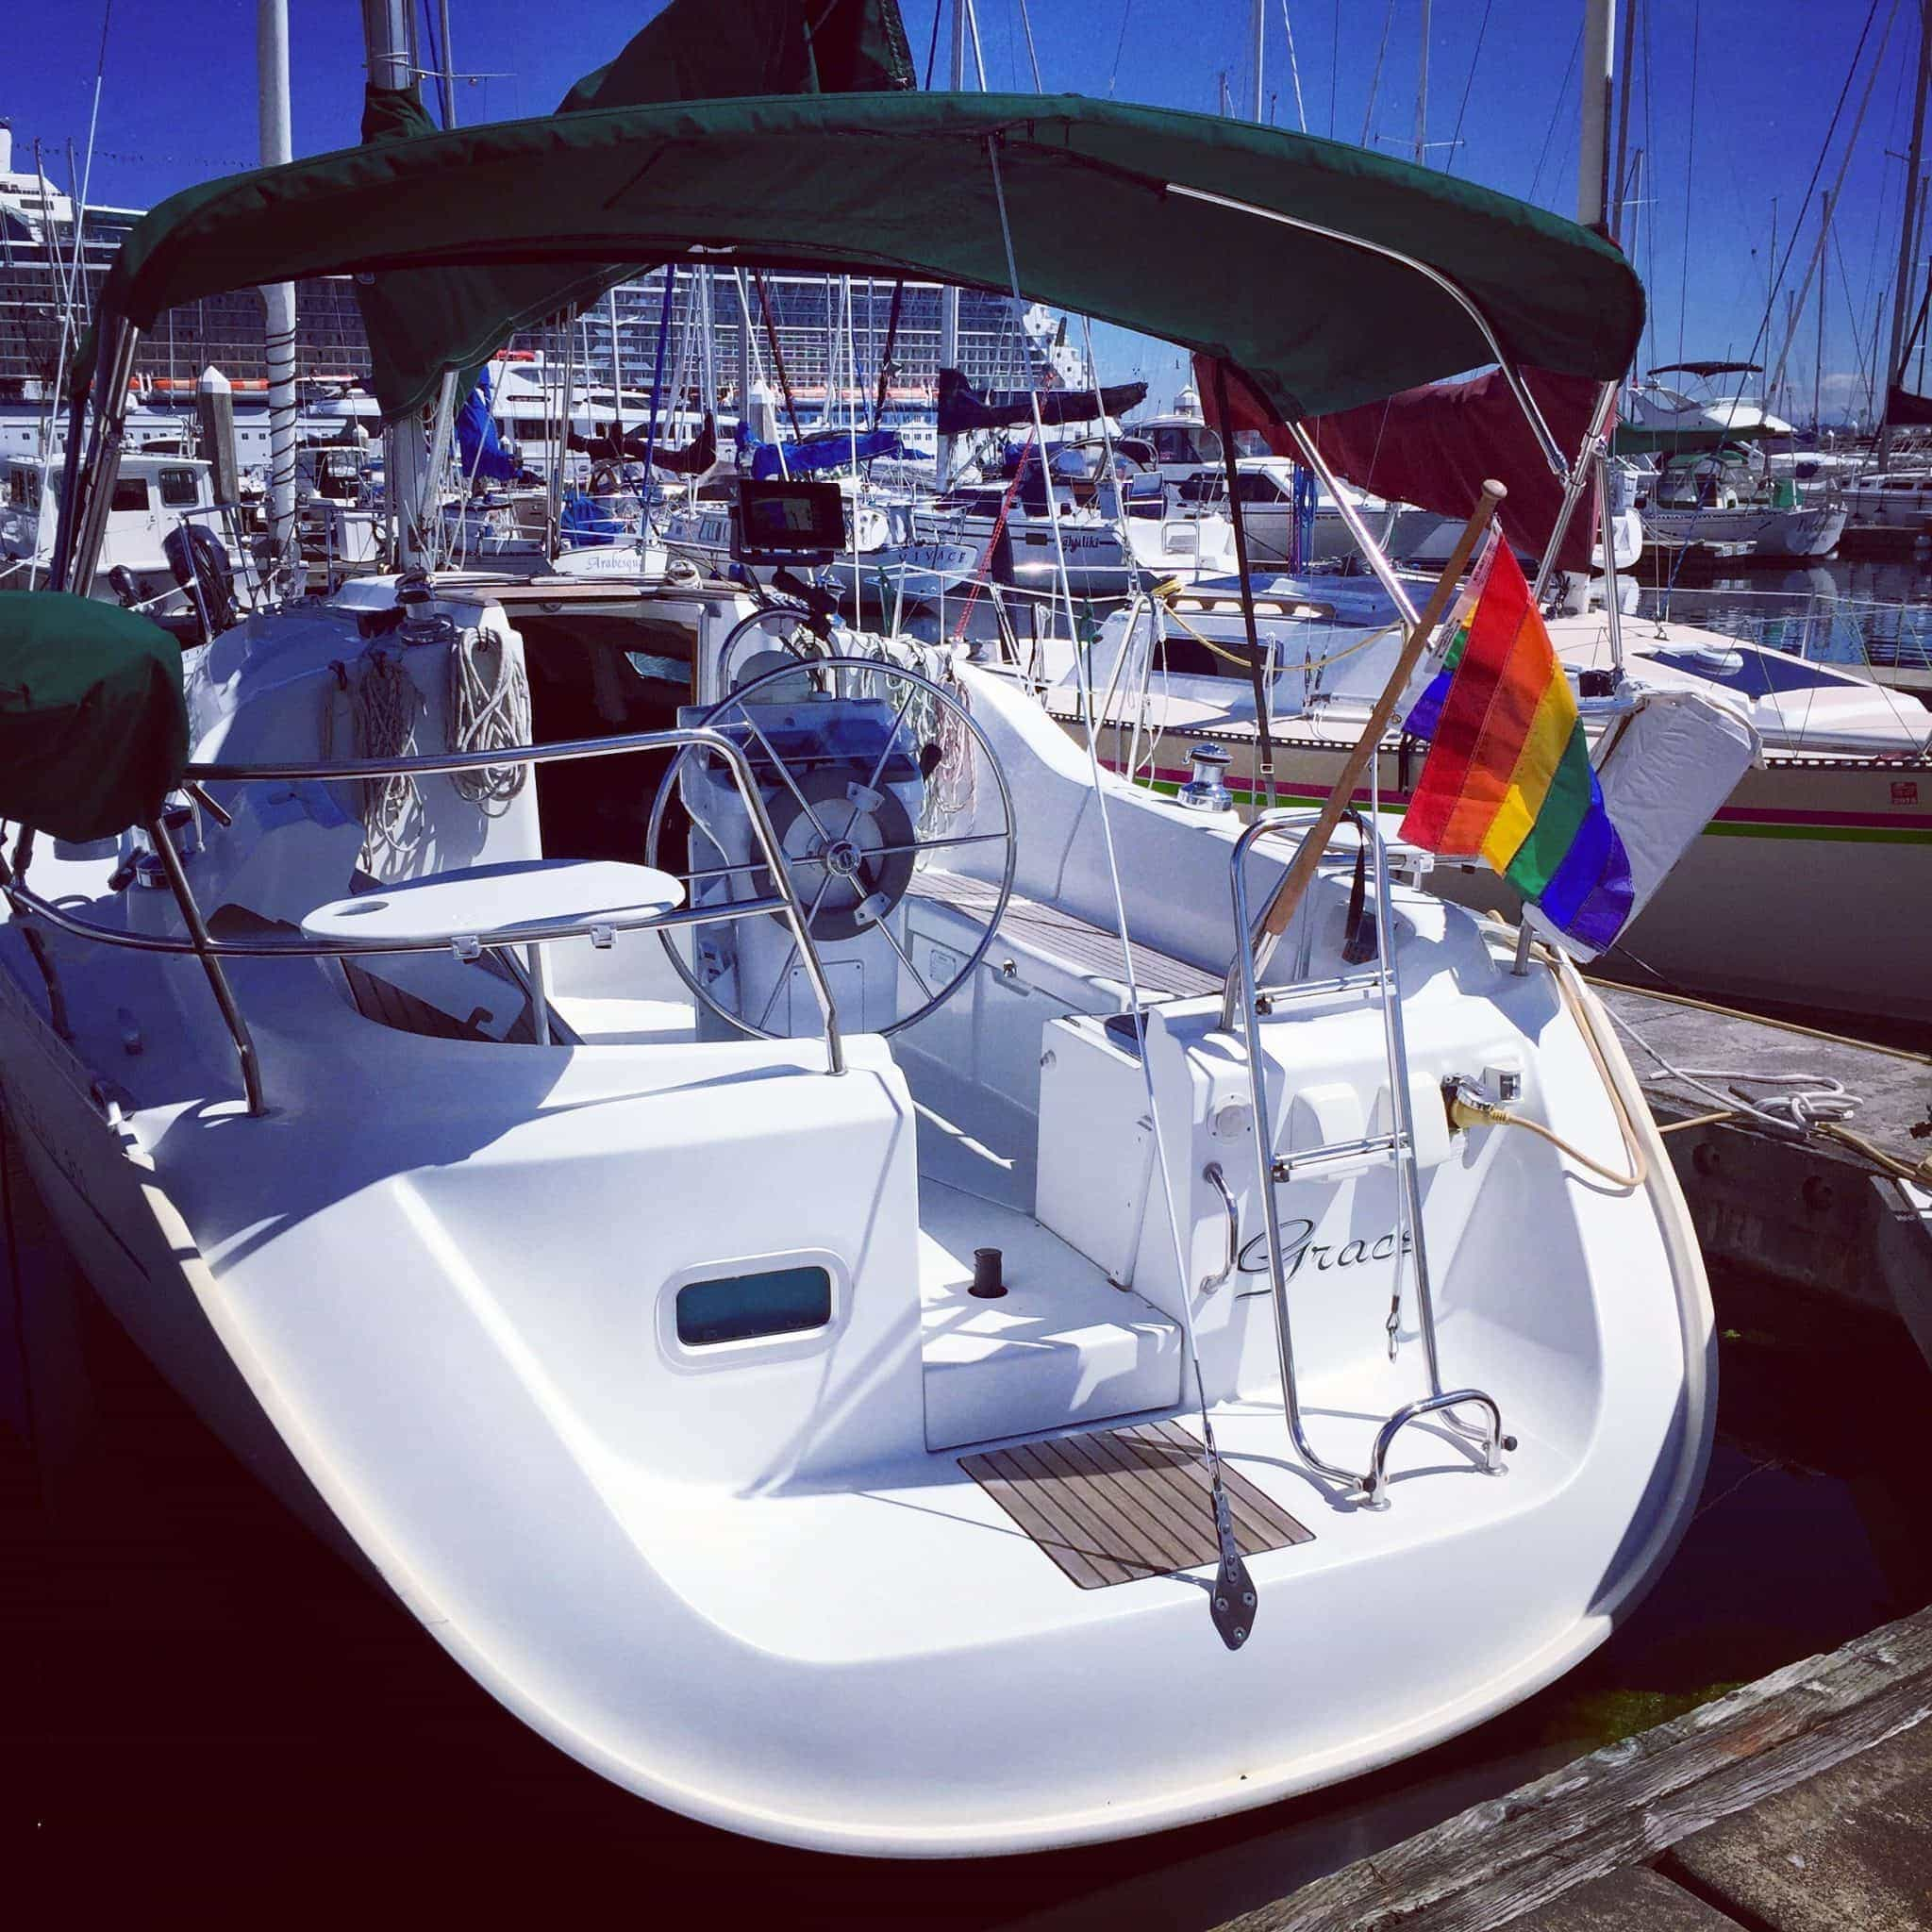 Grace stern-in at the marina. I wish I could do this myself!